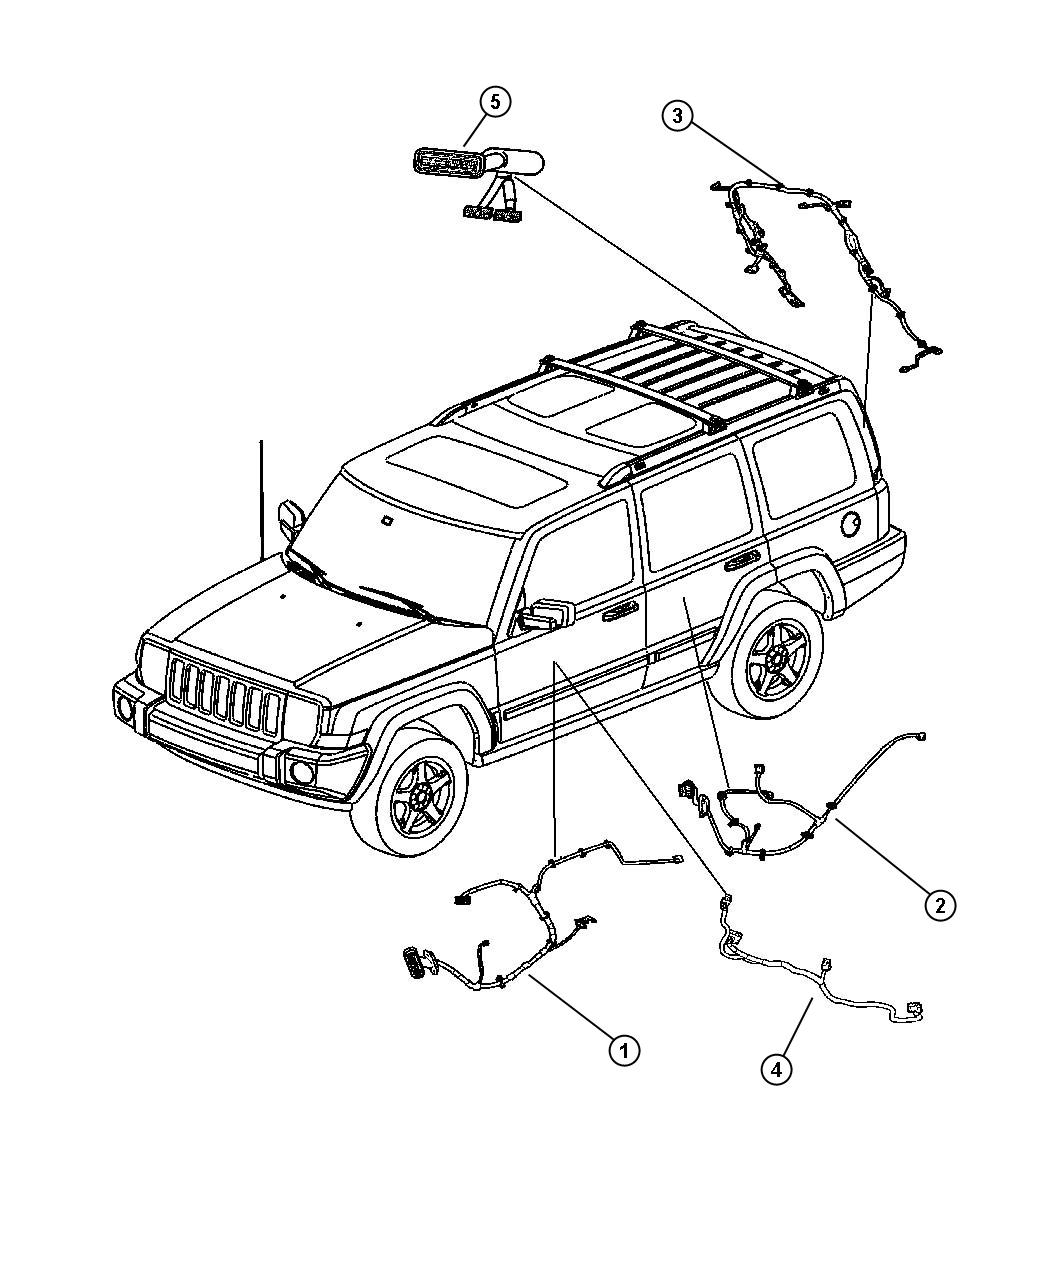 2007 Jeep Commander Wiring. Liftgate jumper. [power